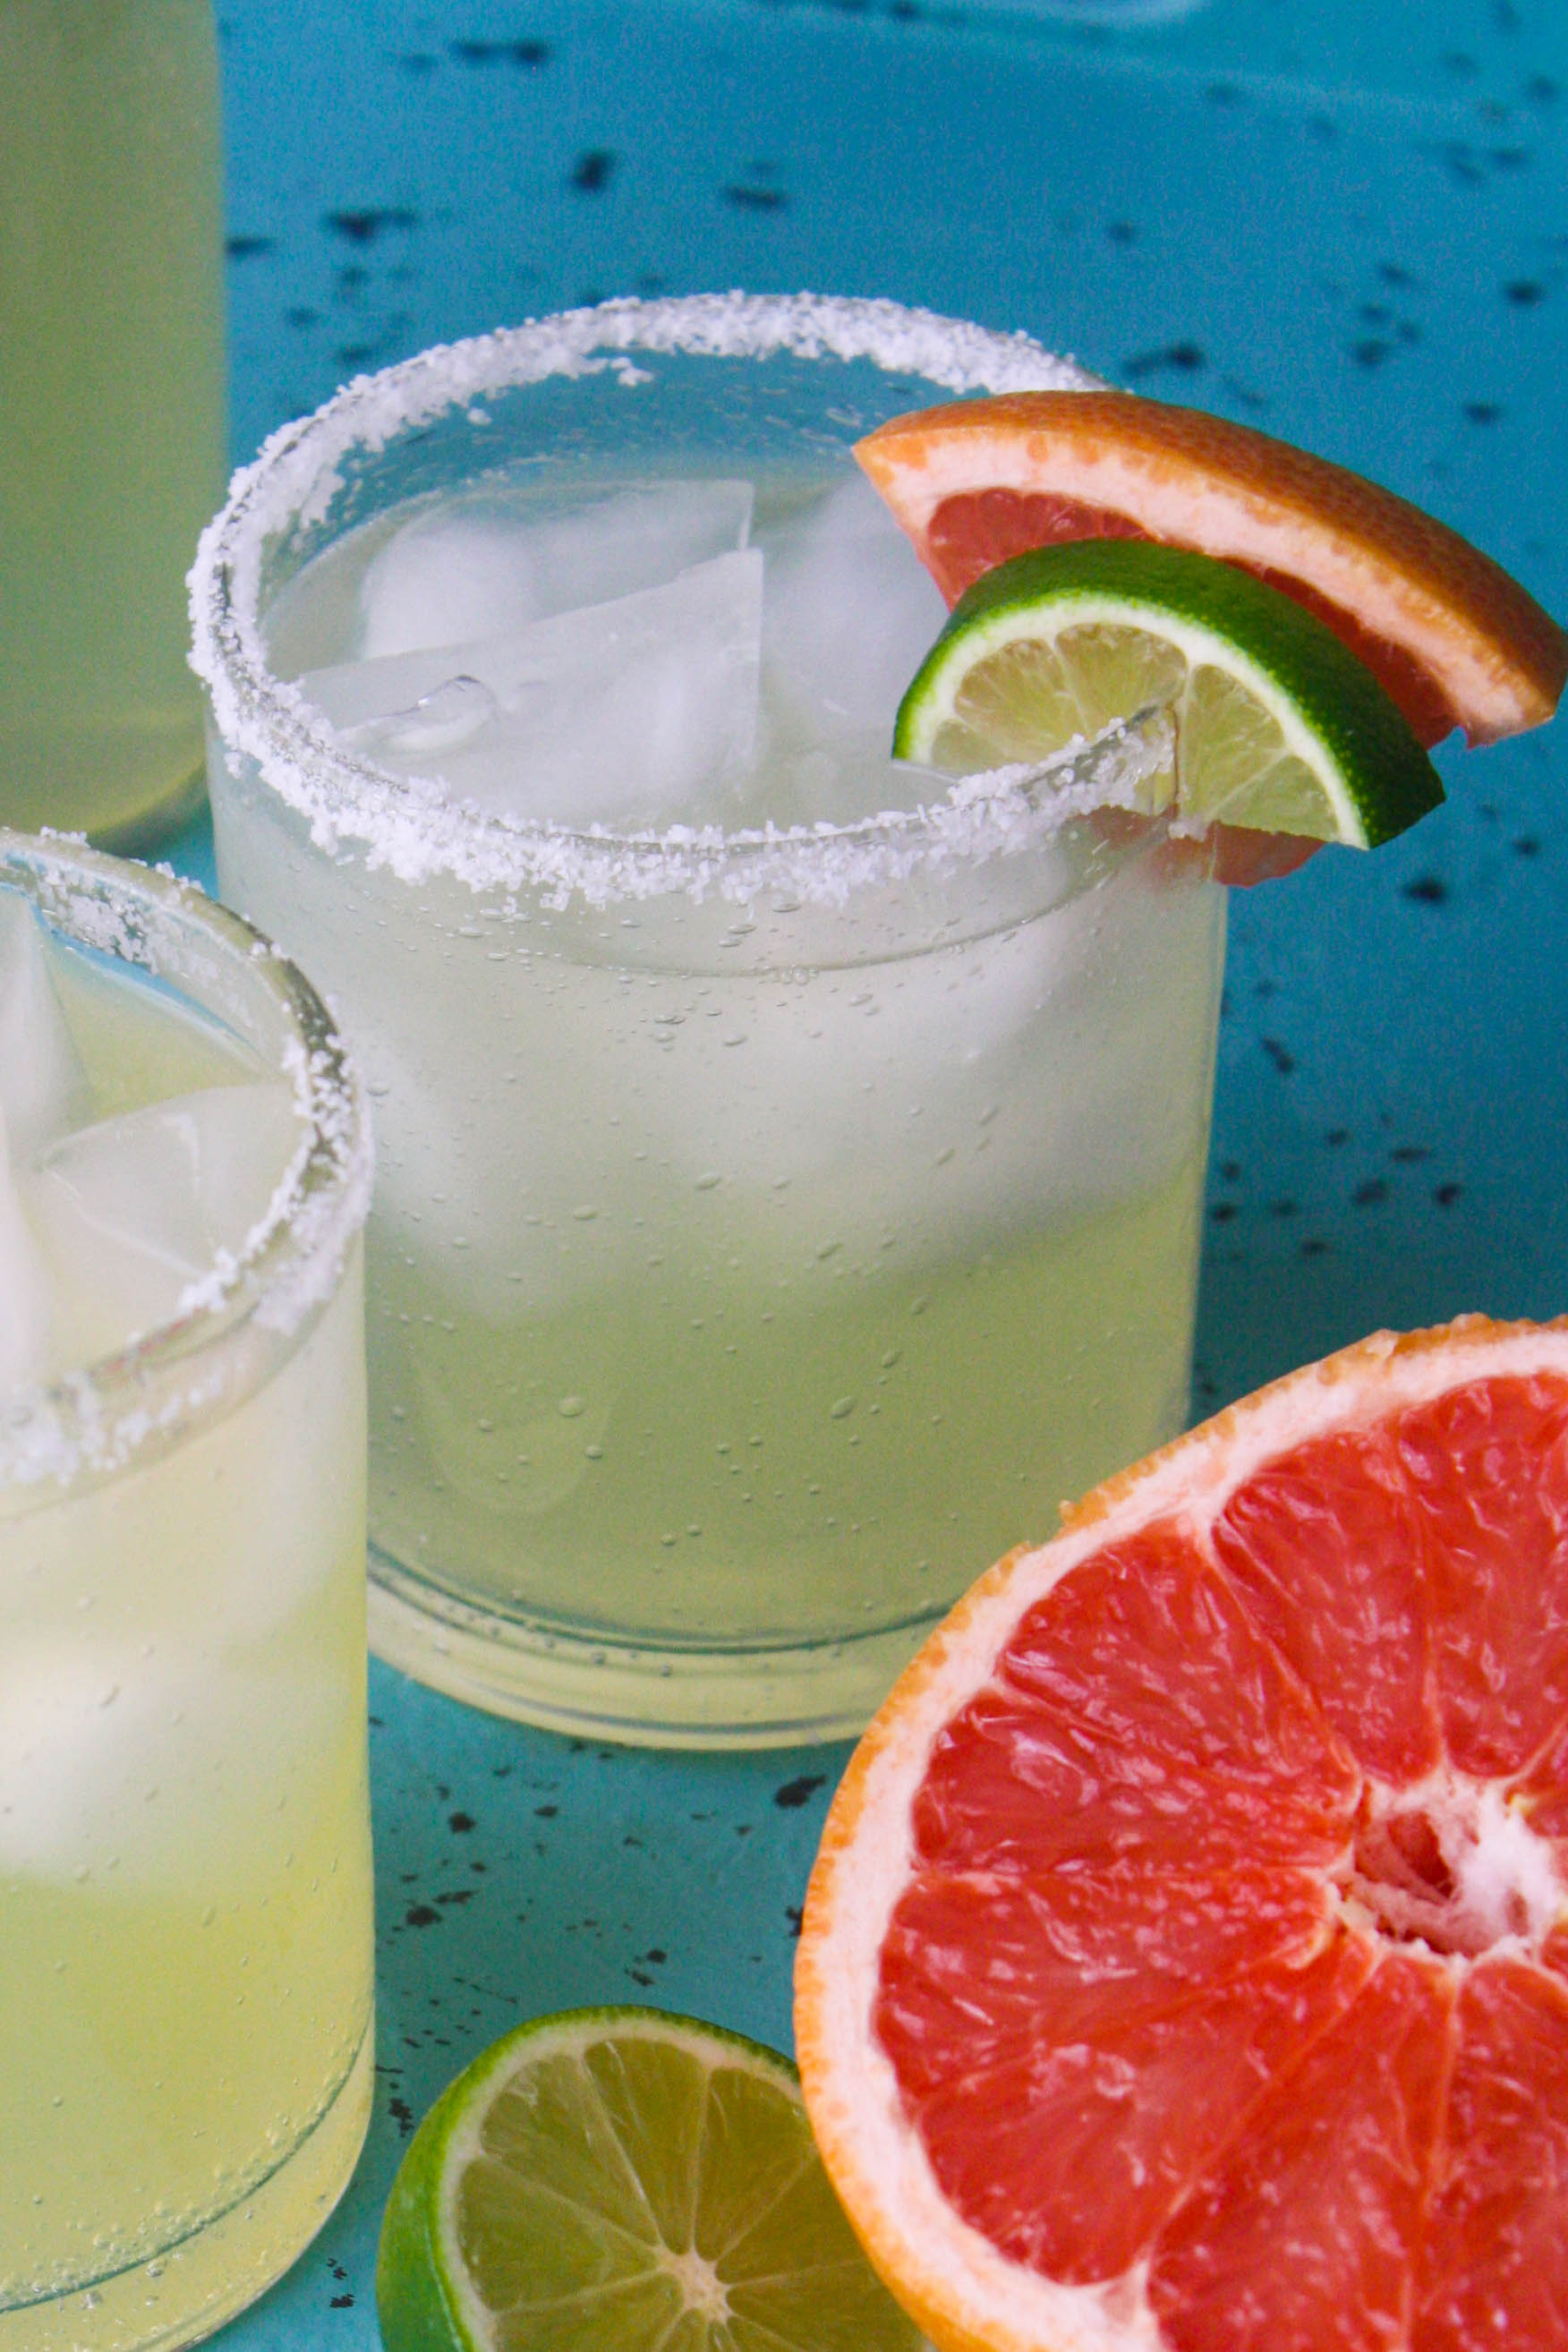 Paloma Cocktails are so nice to enjoy during the warm weather. Paloma Cocktails are fun and festive drinks, for sure!